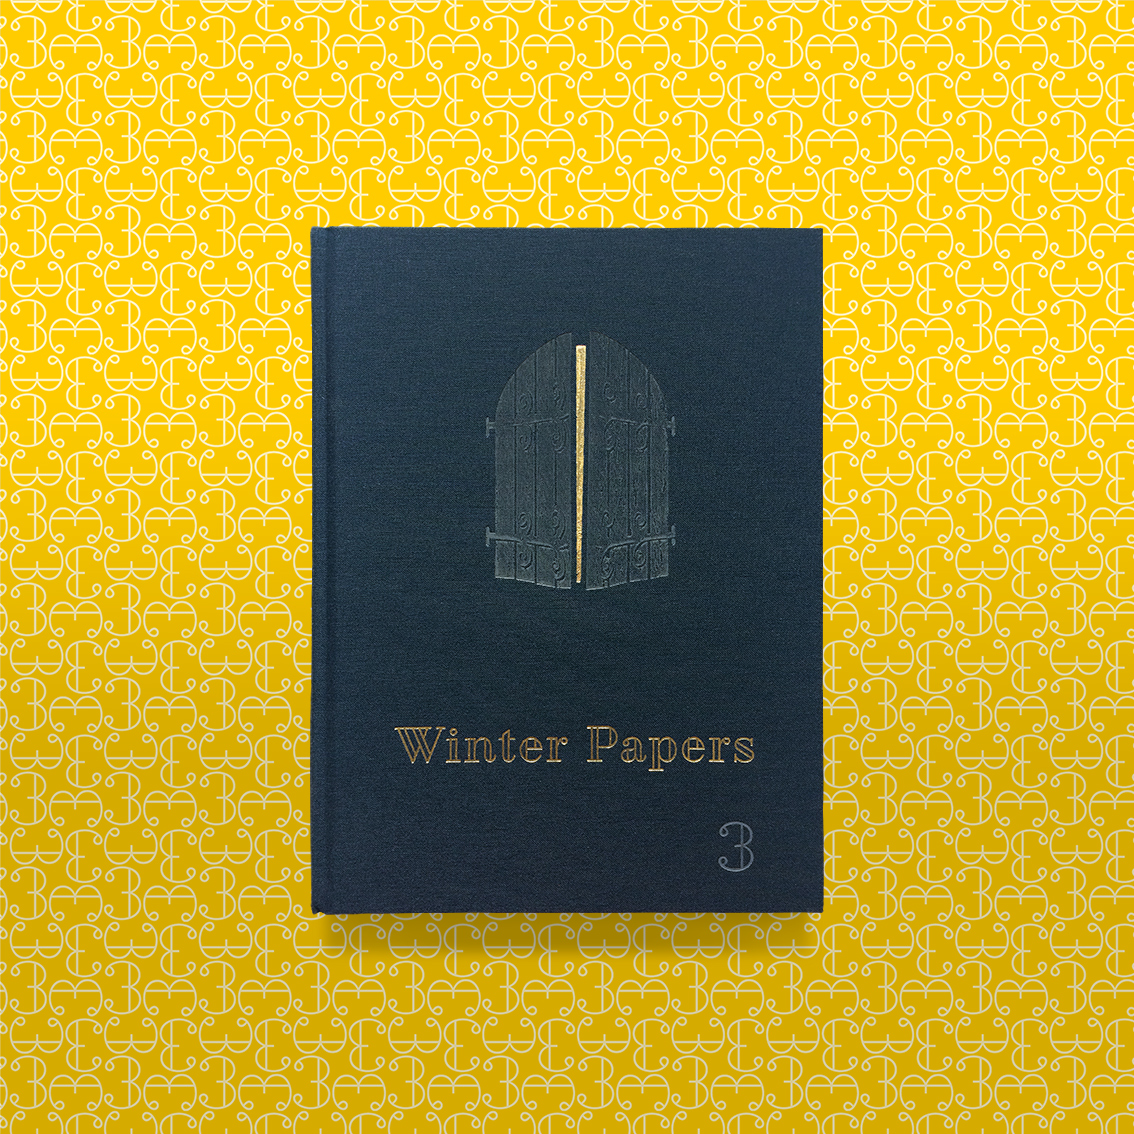 Winter Papers, volume 3